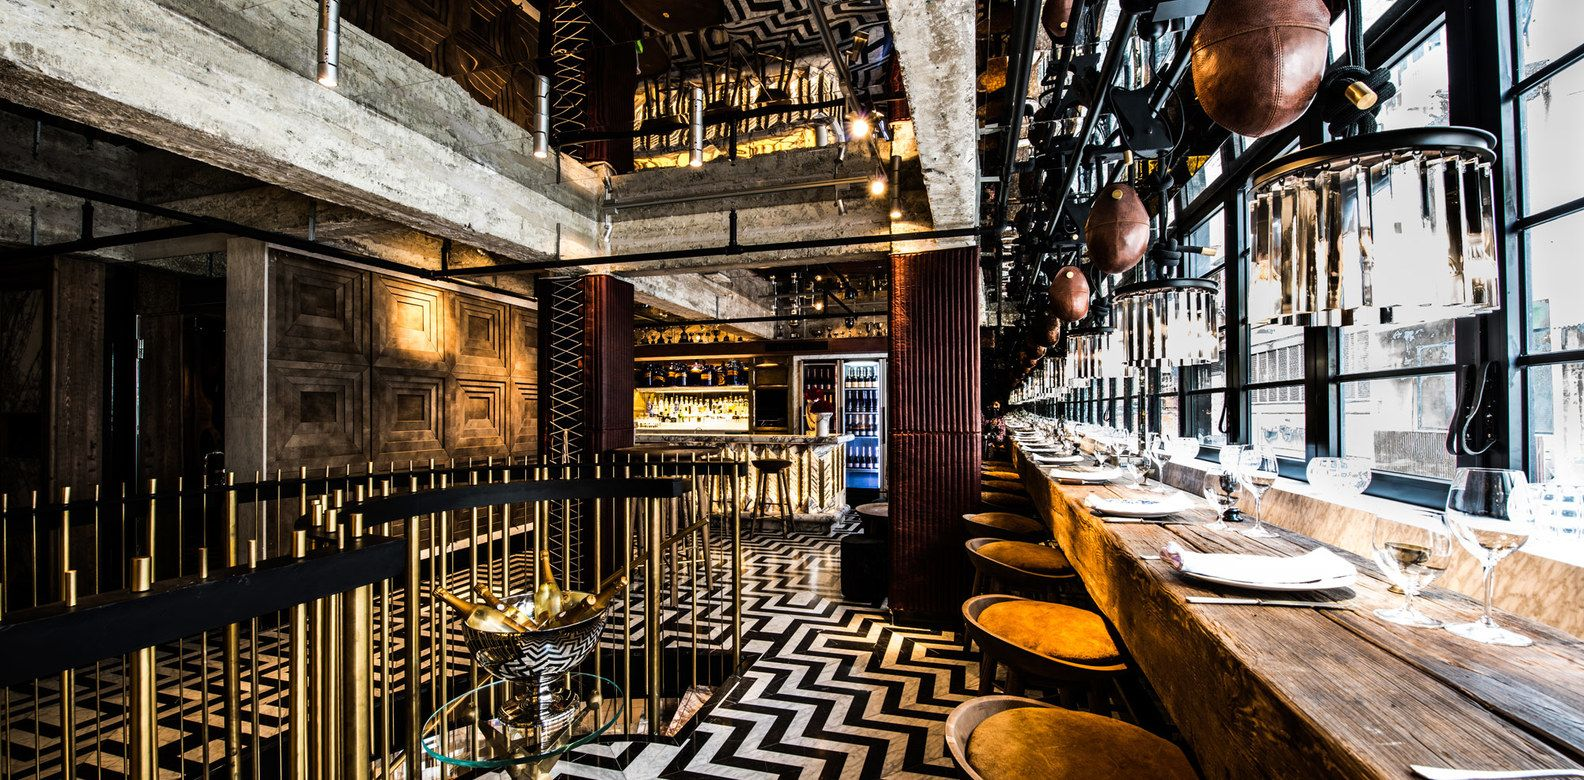 best restaurants in hong kong - gough's on gough - interior design by timothy oulton studio best restaurants in hong kong 10 Best Restaurants in Hong Kong for Great Design & Delicious Victuals goughs on gough